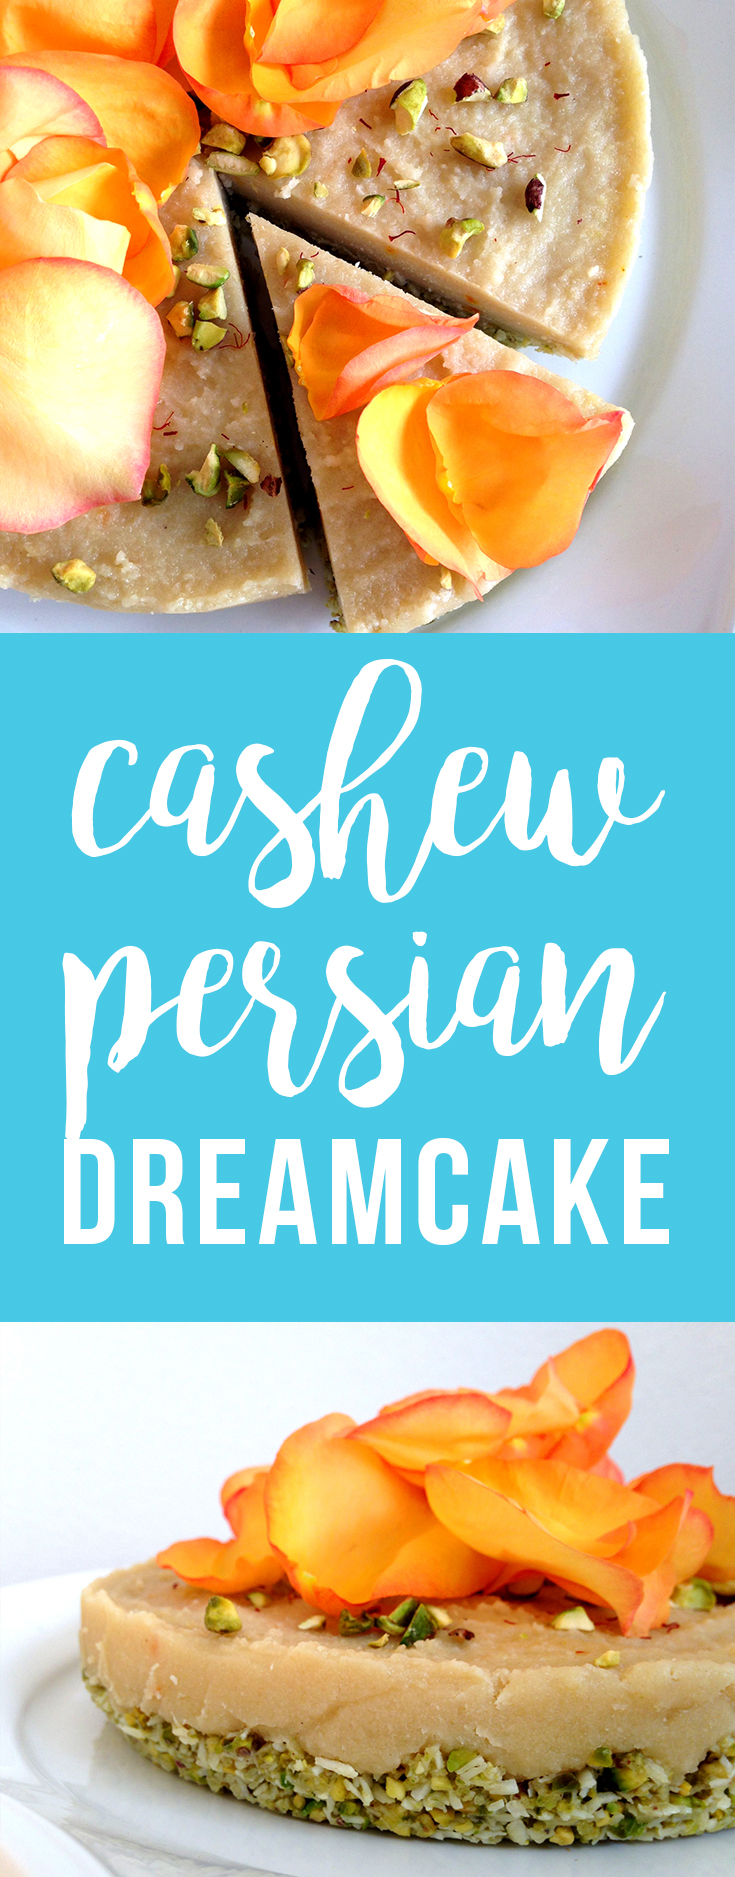 Raw Cashew Persian Dreamcake (vegan & paleo)